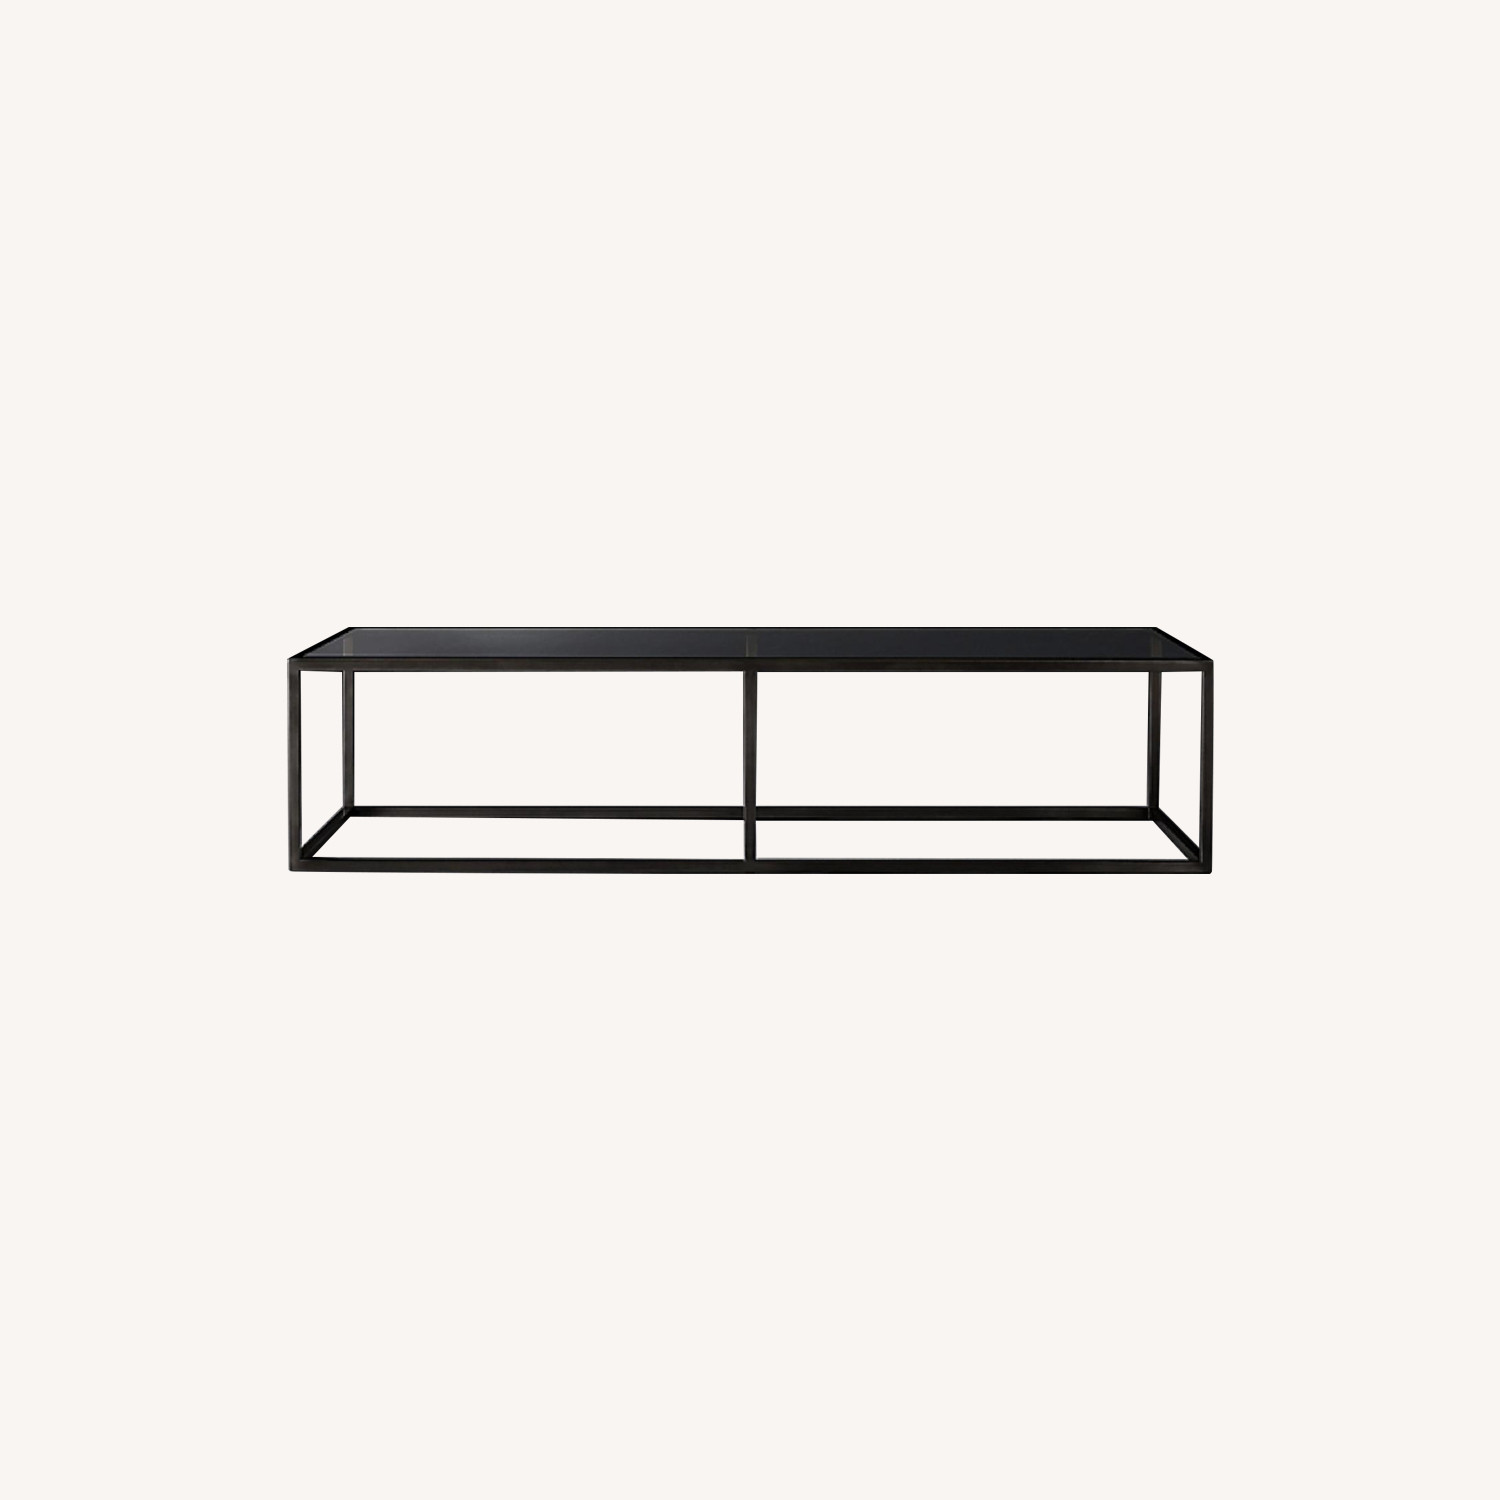 Restoration Hardware Black/Bronze Rectangular Coffee Table